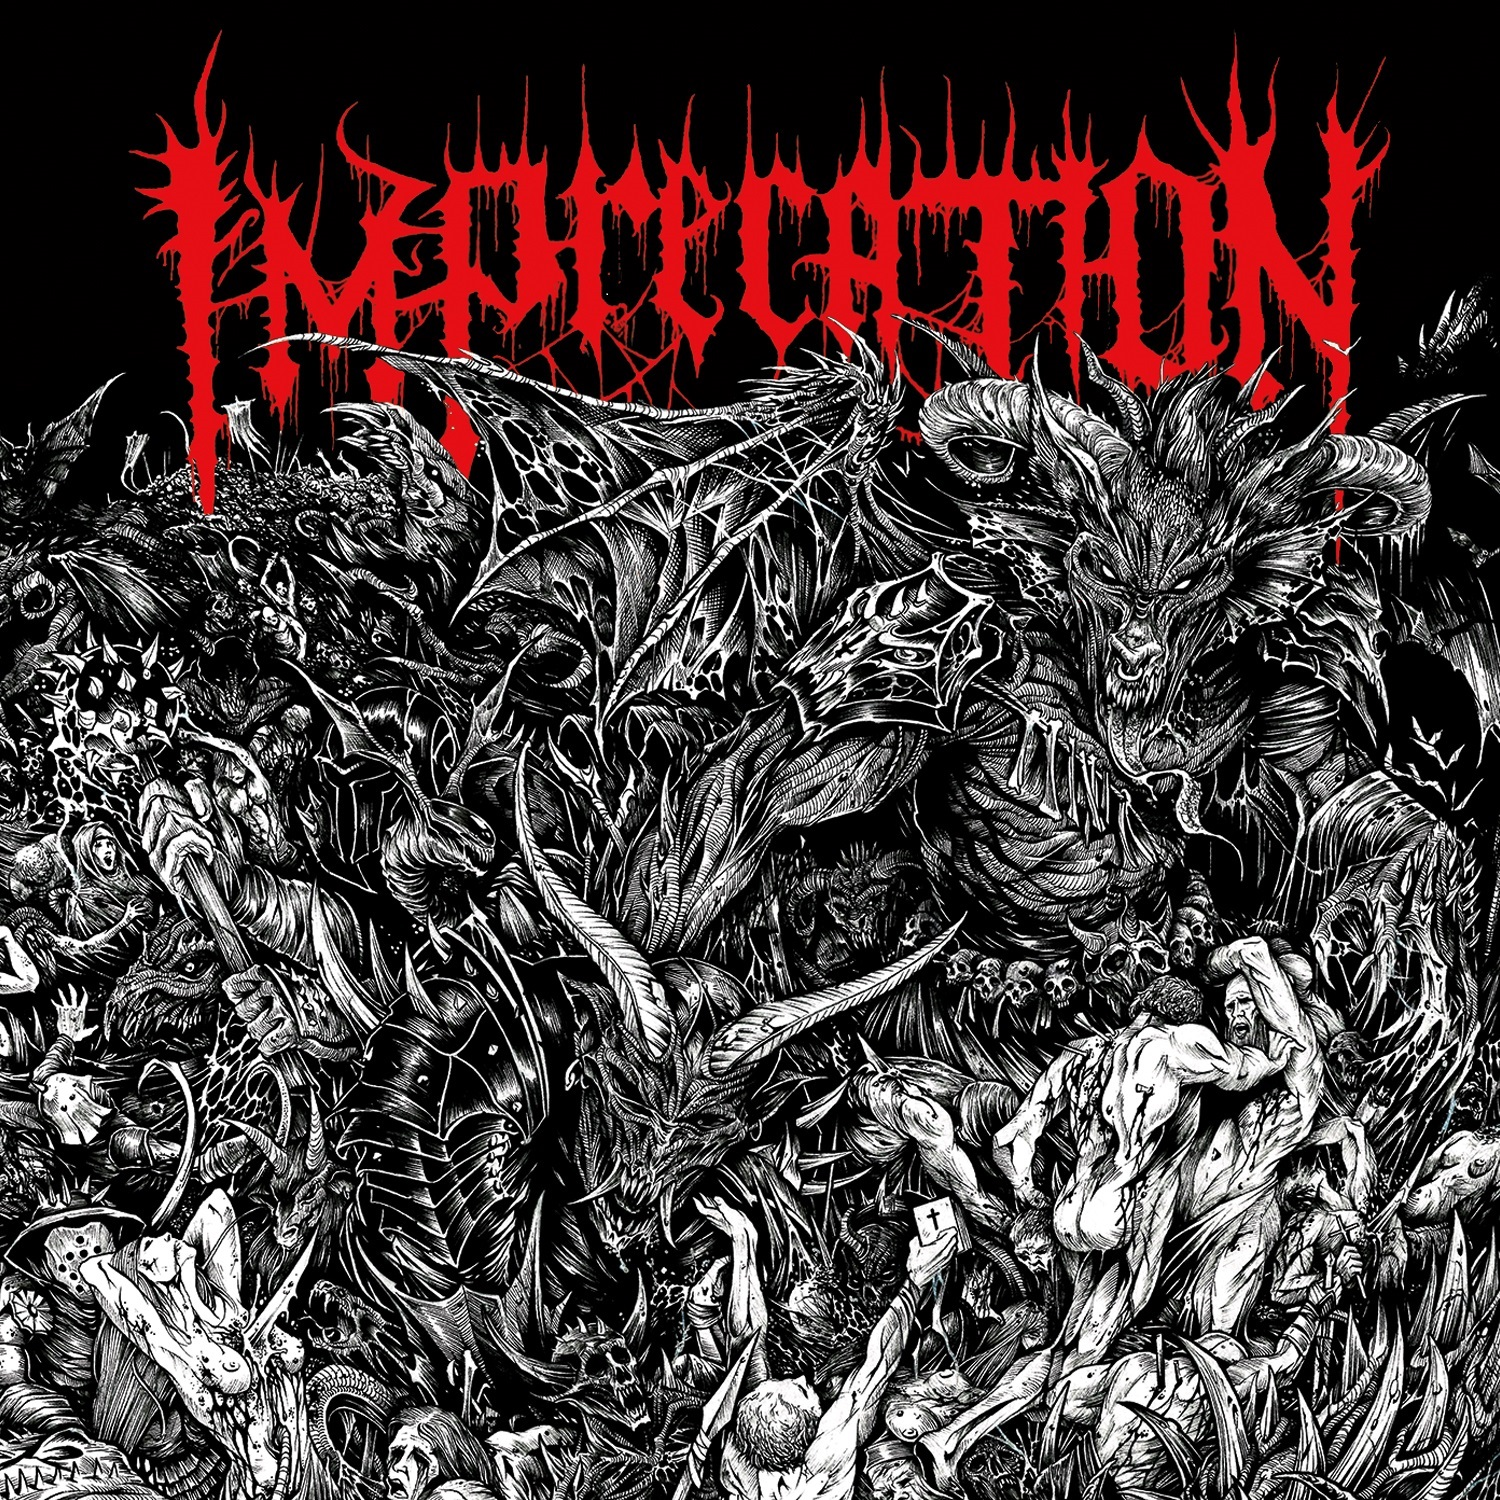 Imprecation - Damnatio Ad Bestias - Press Release + Full Album Stream.